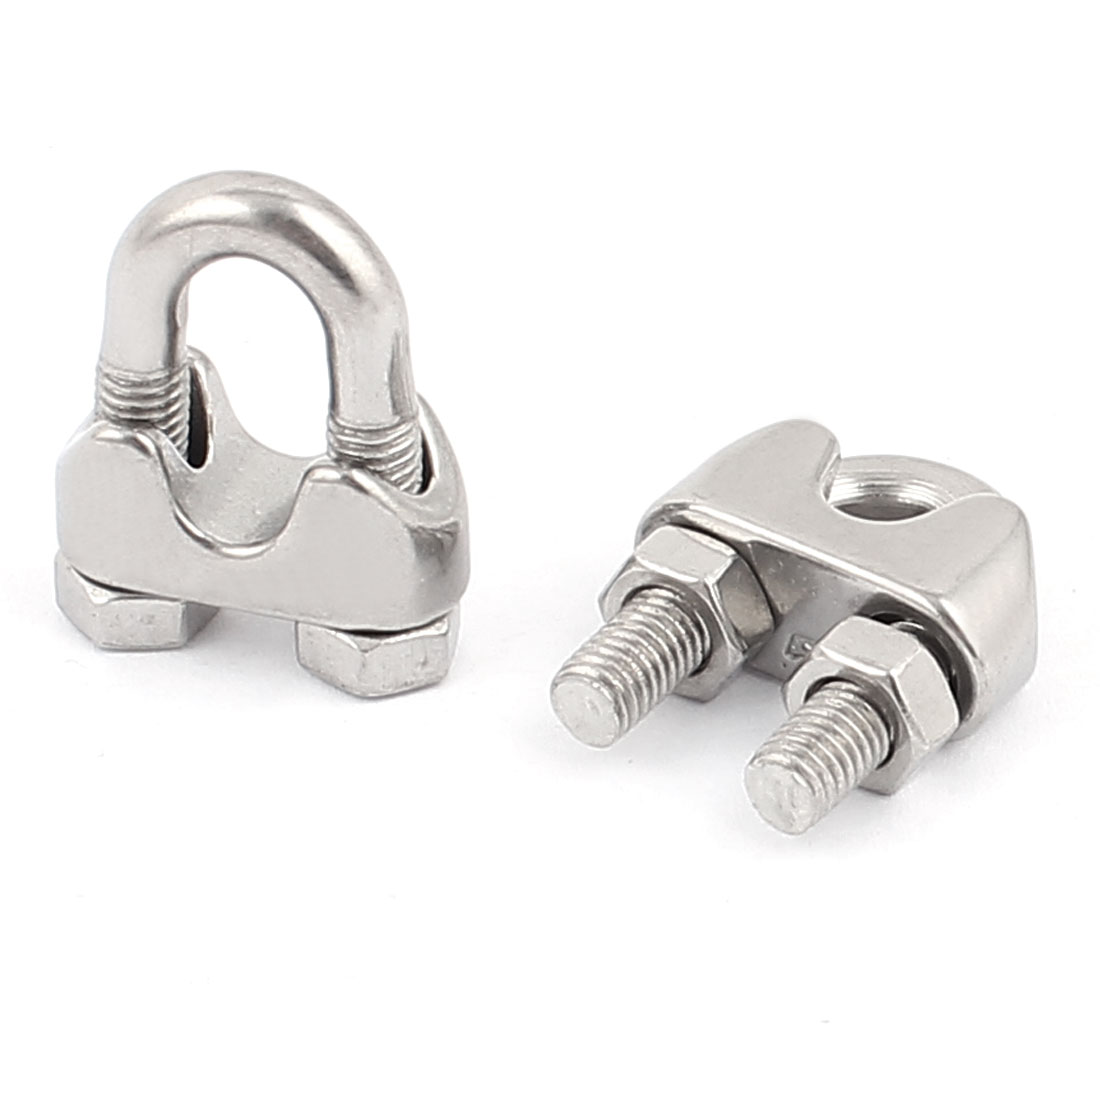 M5 304 Stainless Steel Commercial Wire Rope Clip Cable Clamp 2pcs